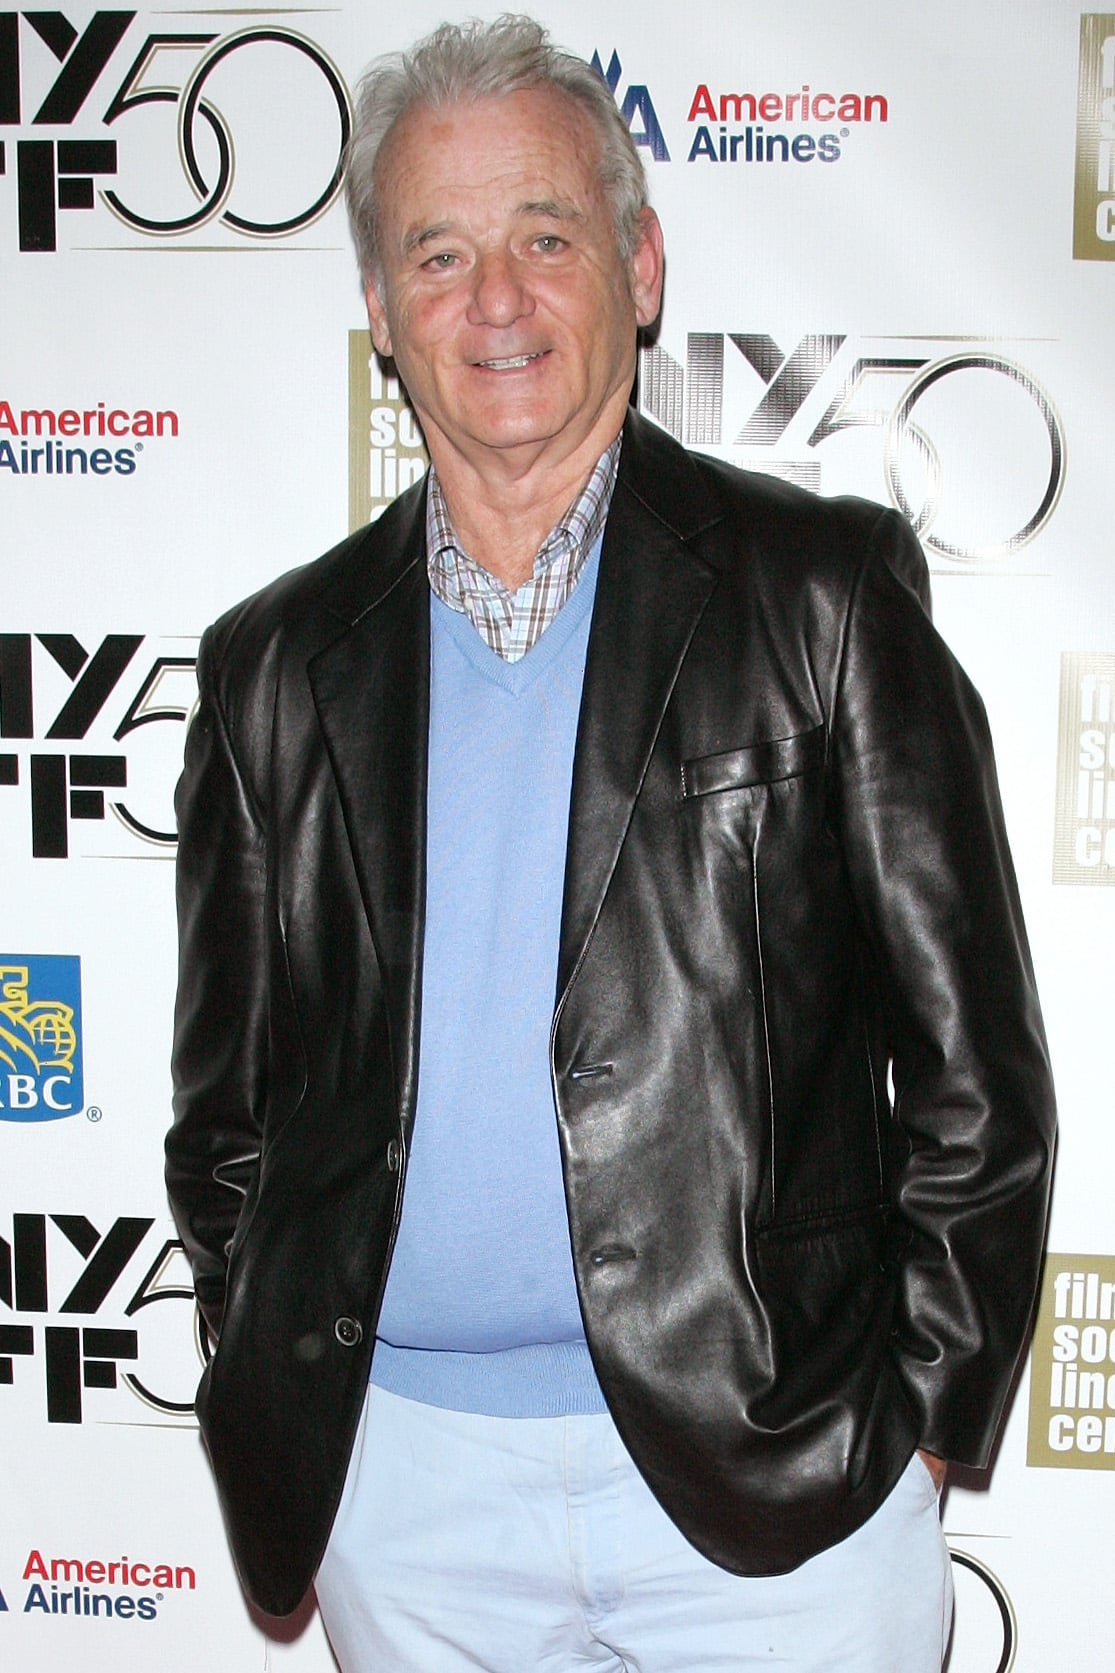 Bill Murray may join Cameron Crowe's latest movie, which is starring Emma Stone, Bradley Cooper, and Rachel McAdams. No word yet on who he will play.